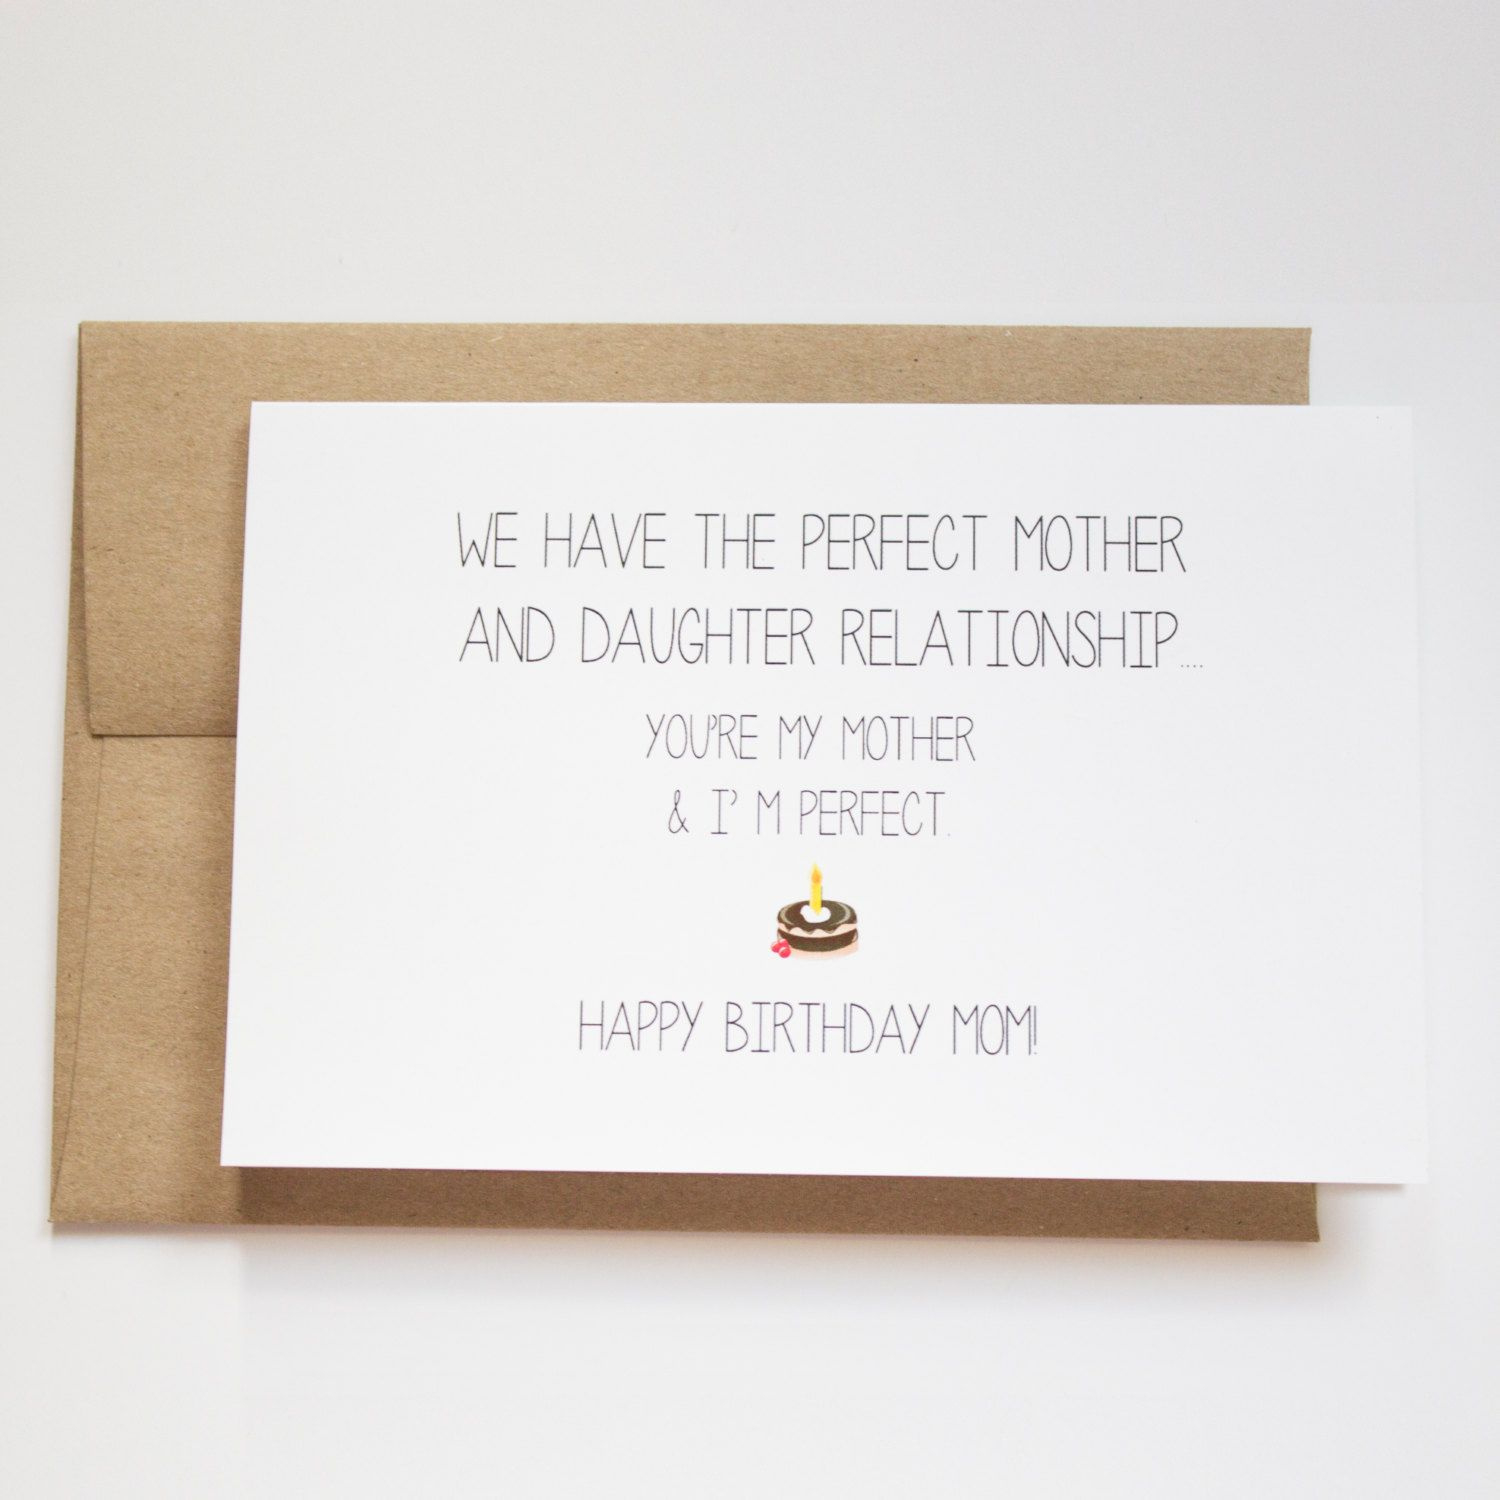 Cute Card Ideas For Birthday Cards Cute Birthday Cards For Mom Amusing Happy Birthday Mom Card